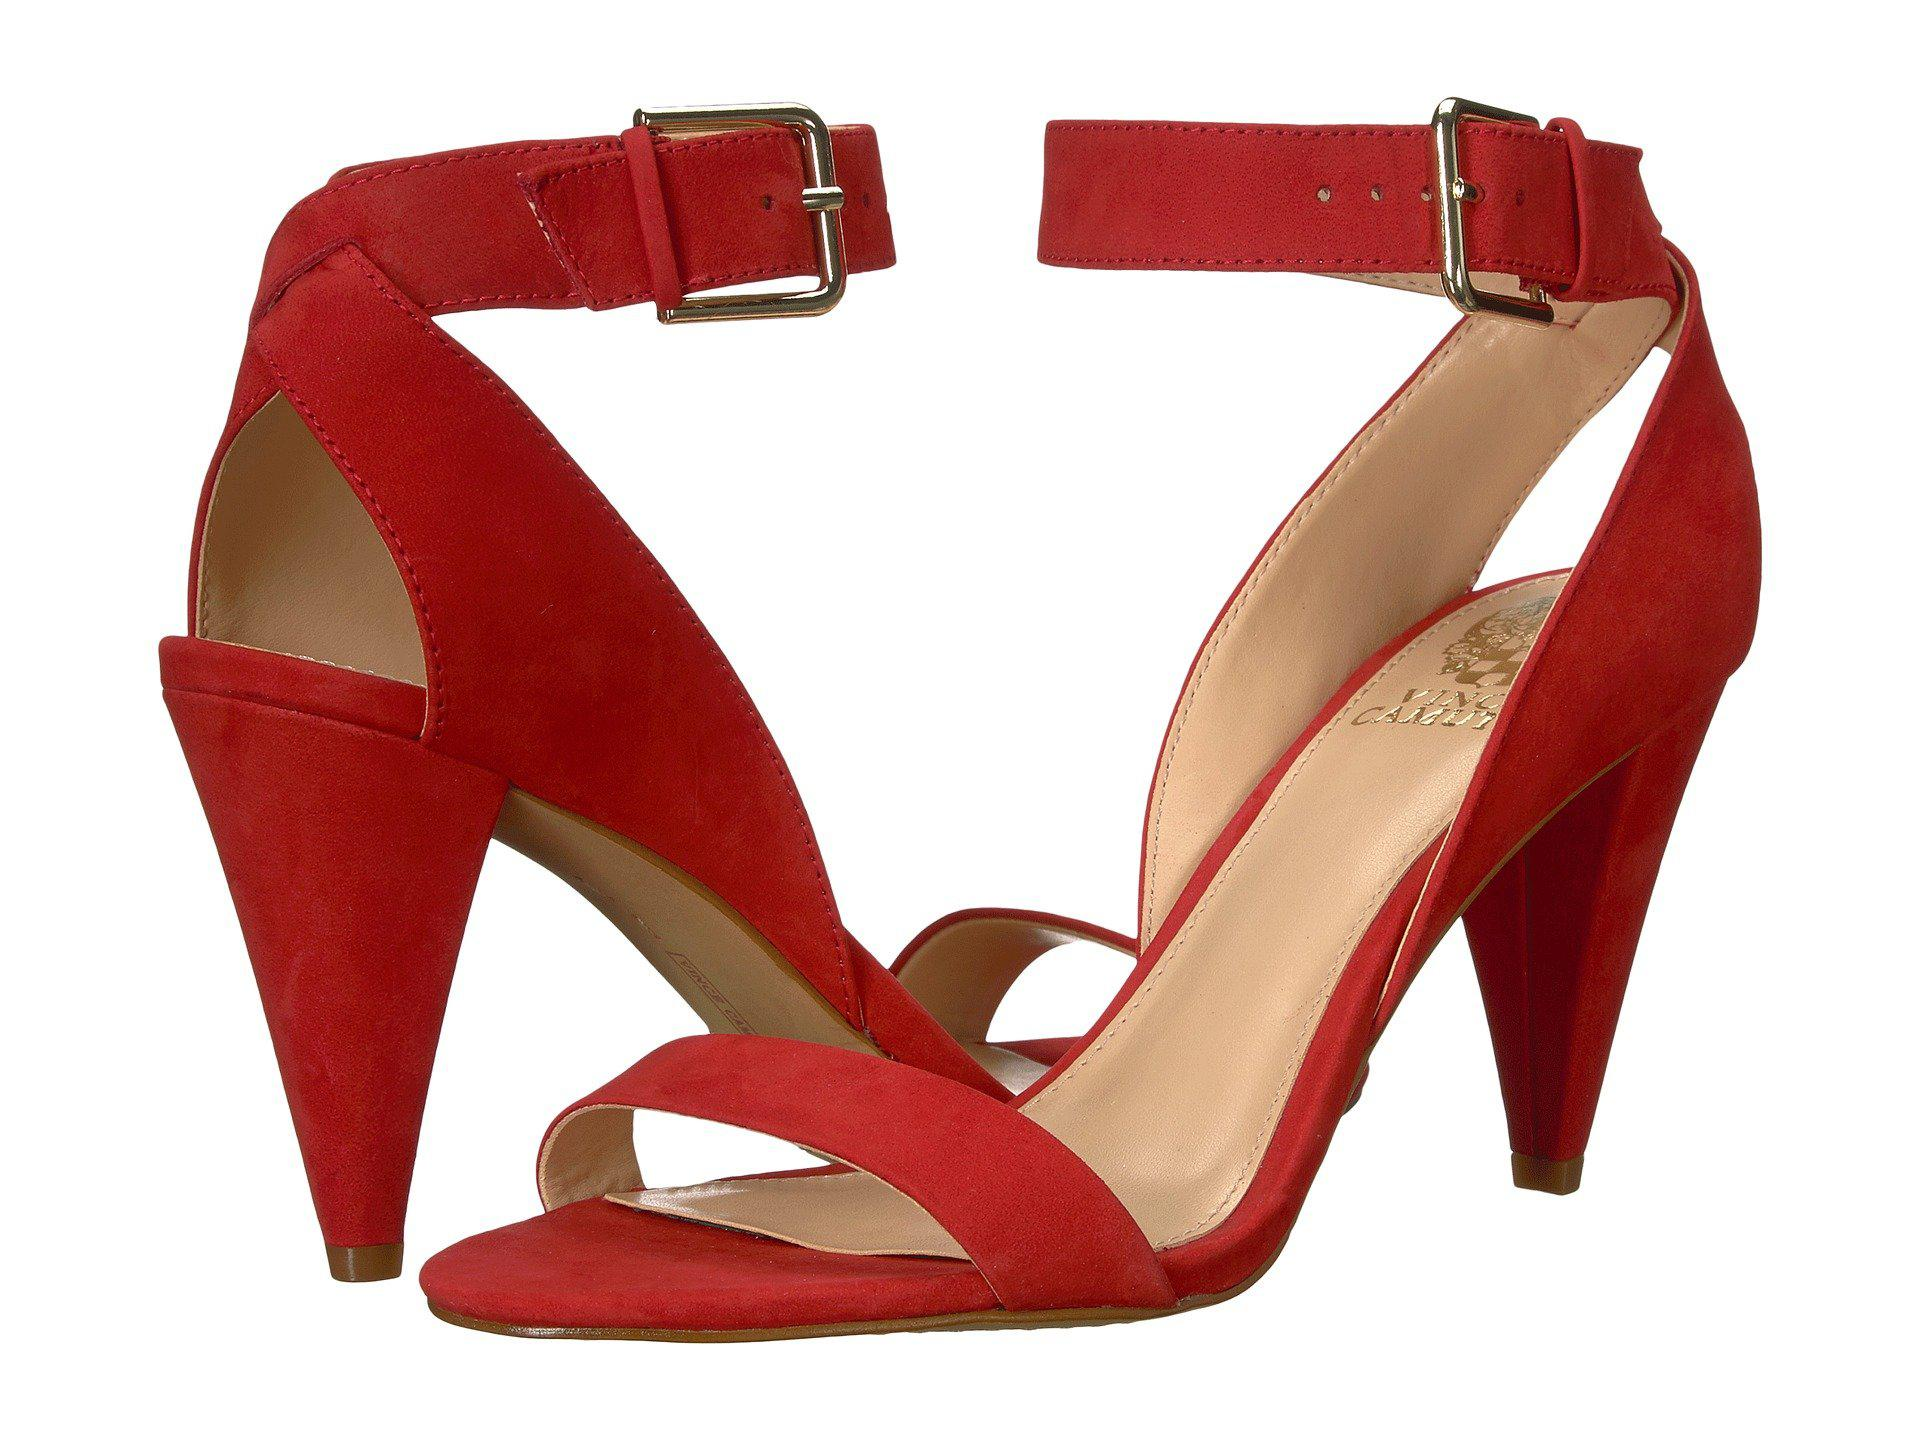 a424a4187c5 Lyst - Vince Camuto Caitriona in Red